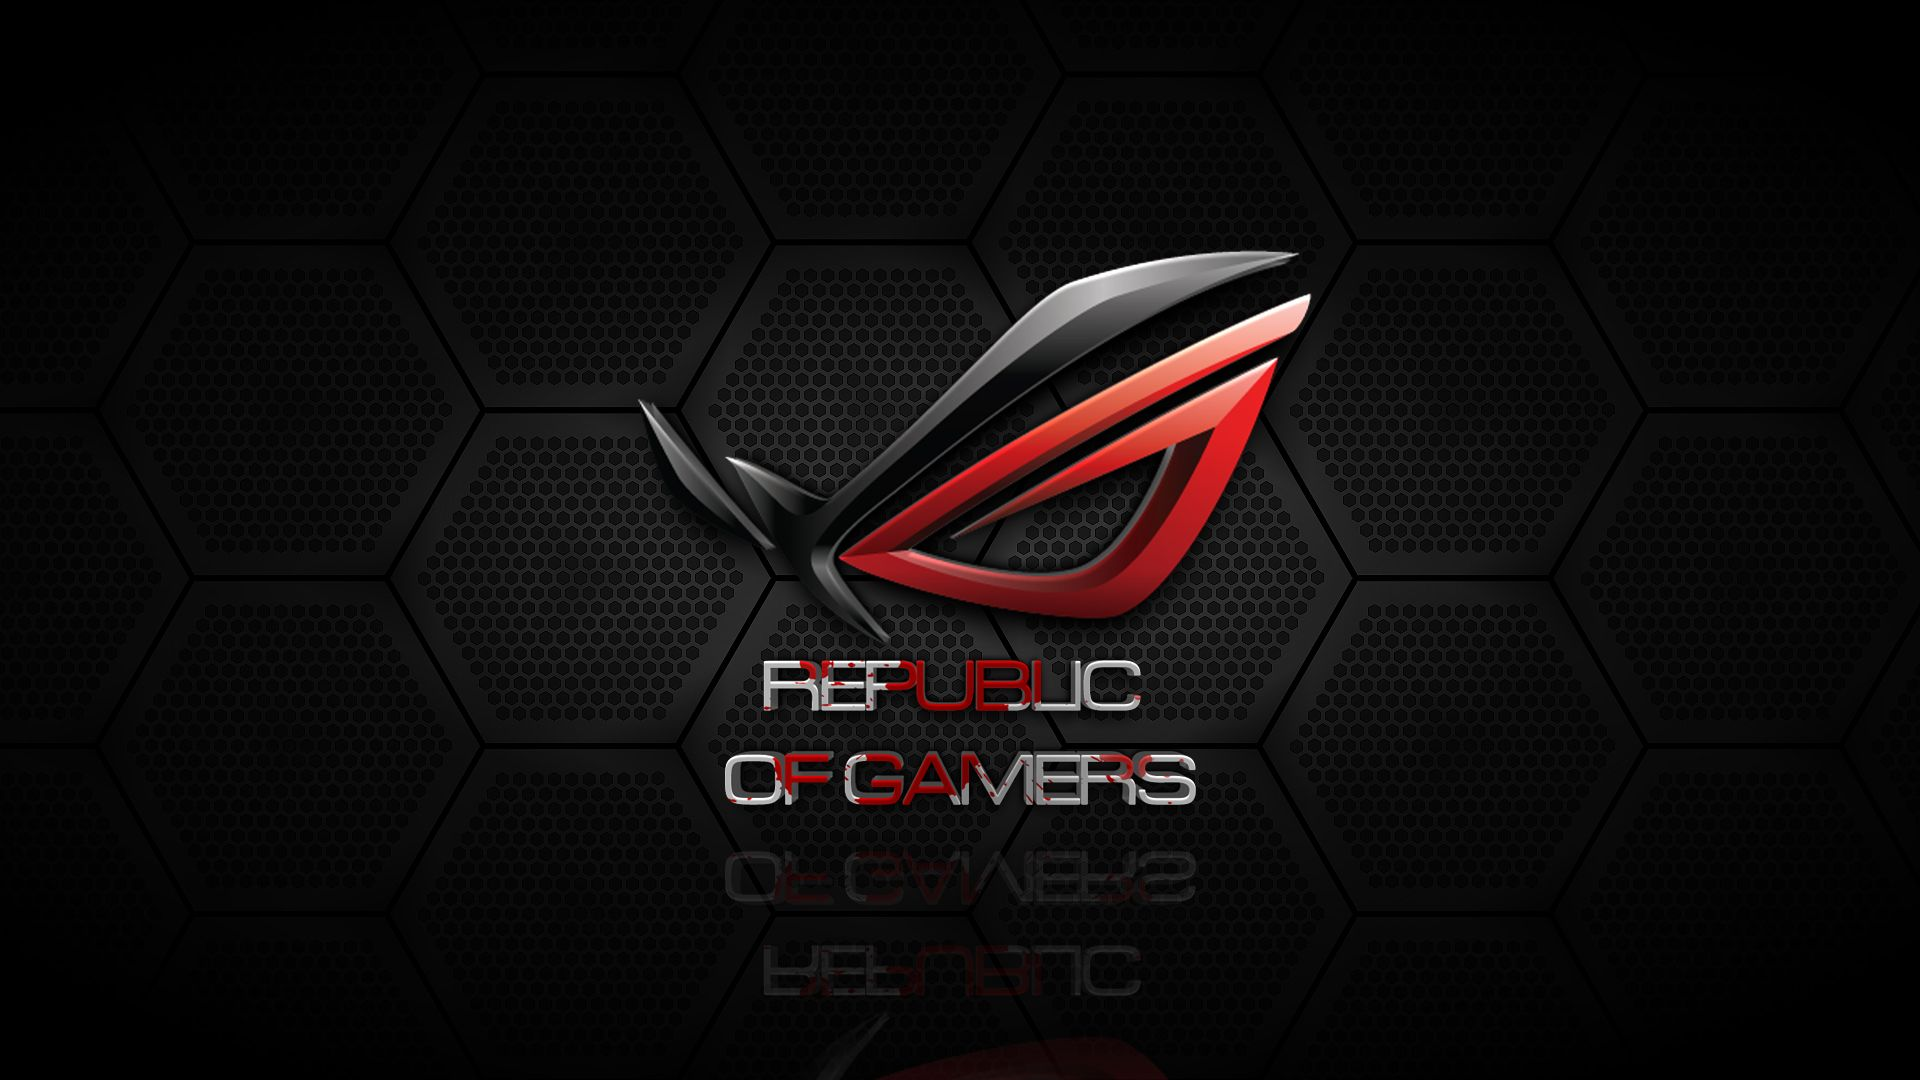 black and red republic of gamers asus rog wallpaper stuff to buy